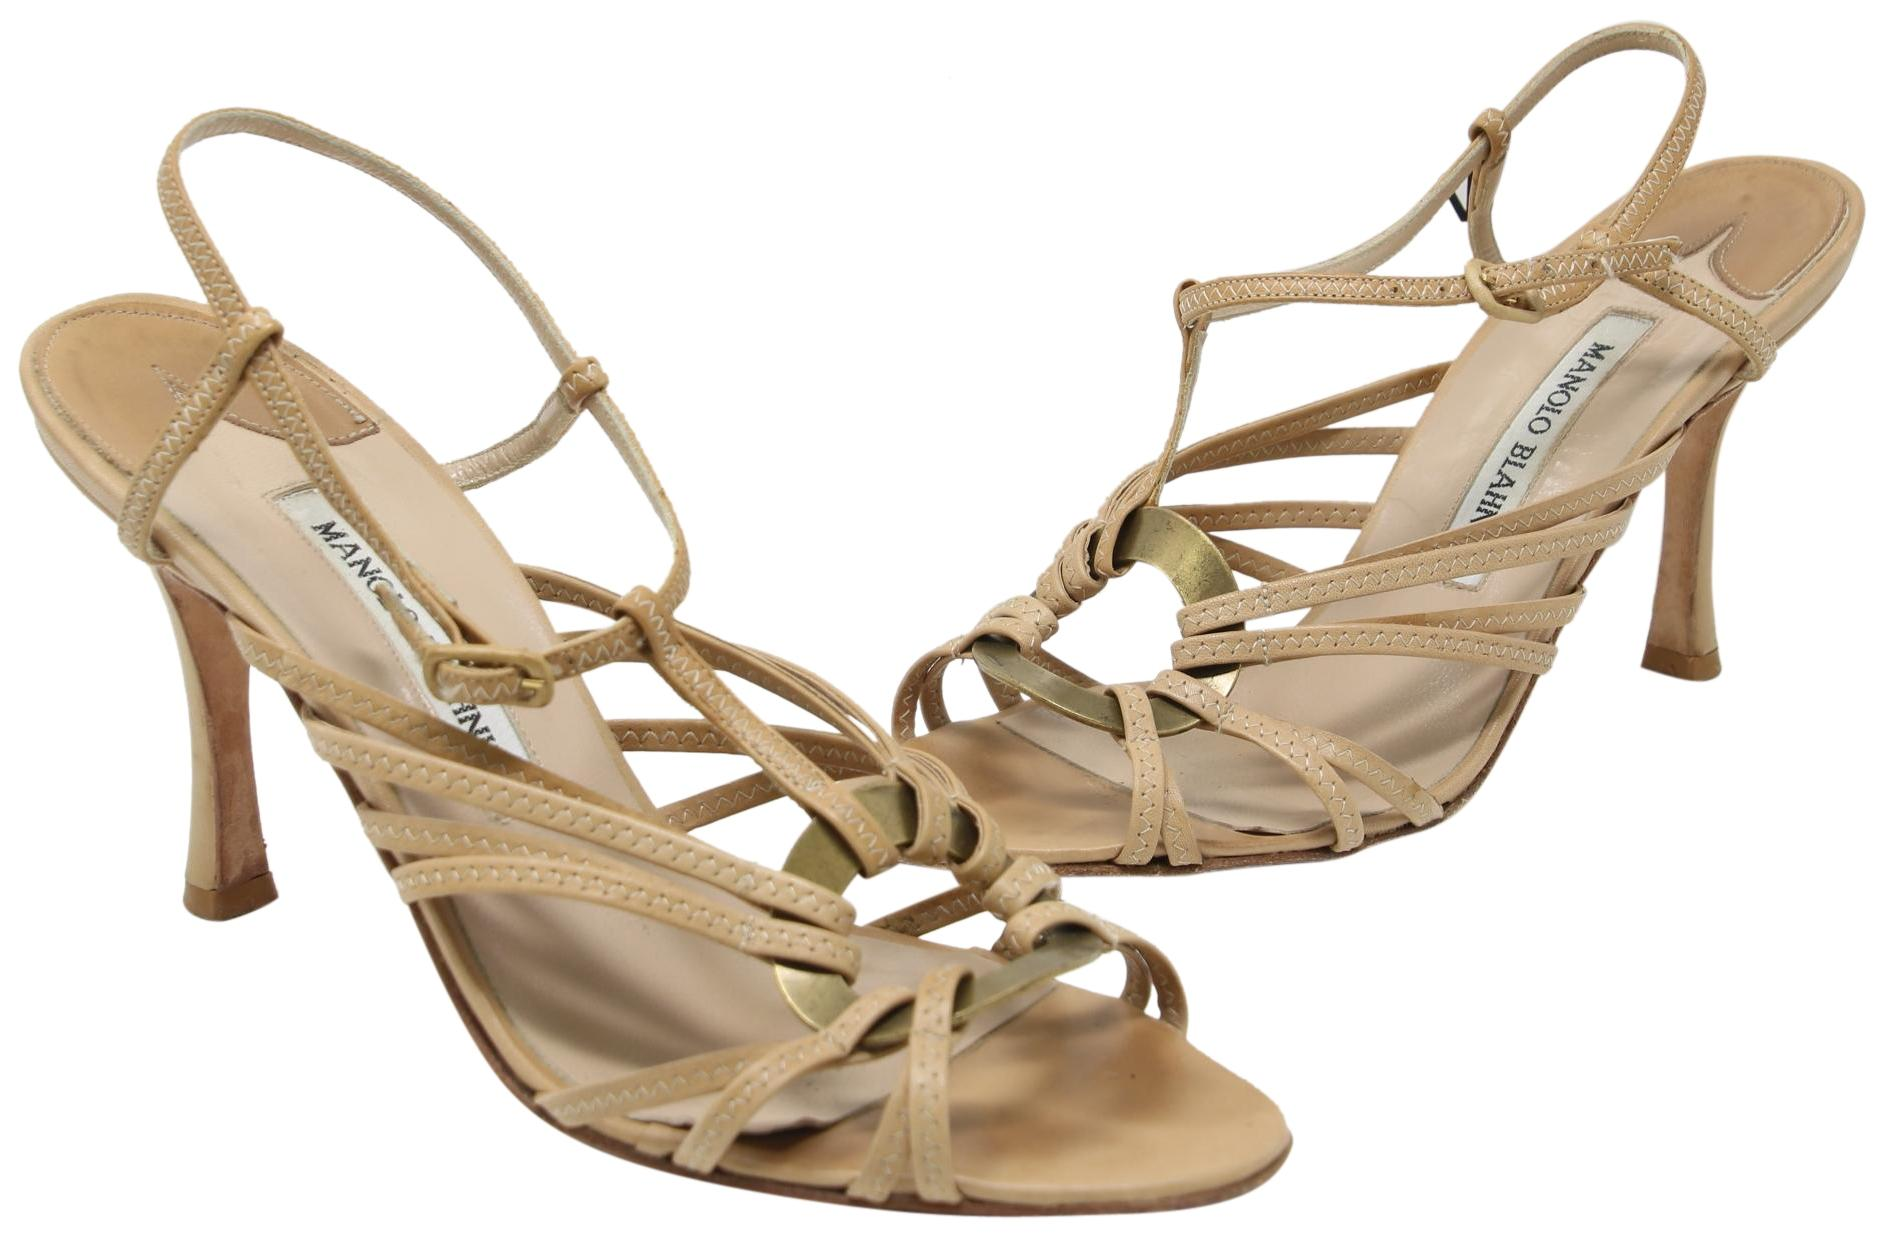 Manolo Blahnik Crossover Peep-Toe Sandals recommend online A77VhyAjq